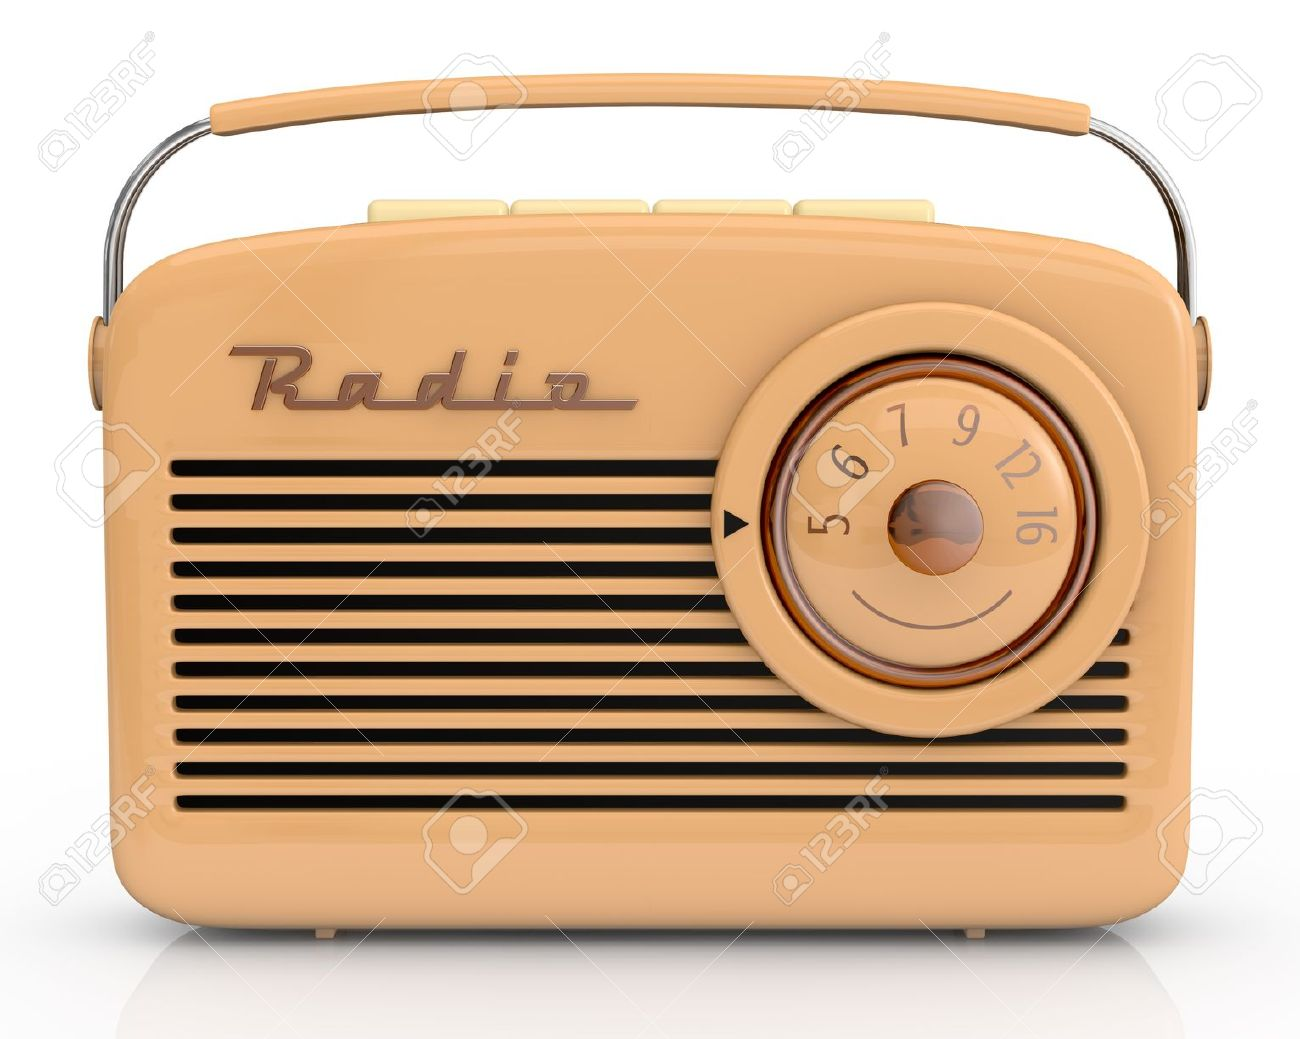 Amazing Radio Pictures & Backgrounds